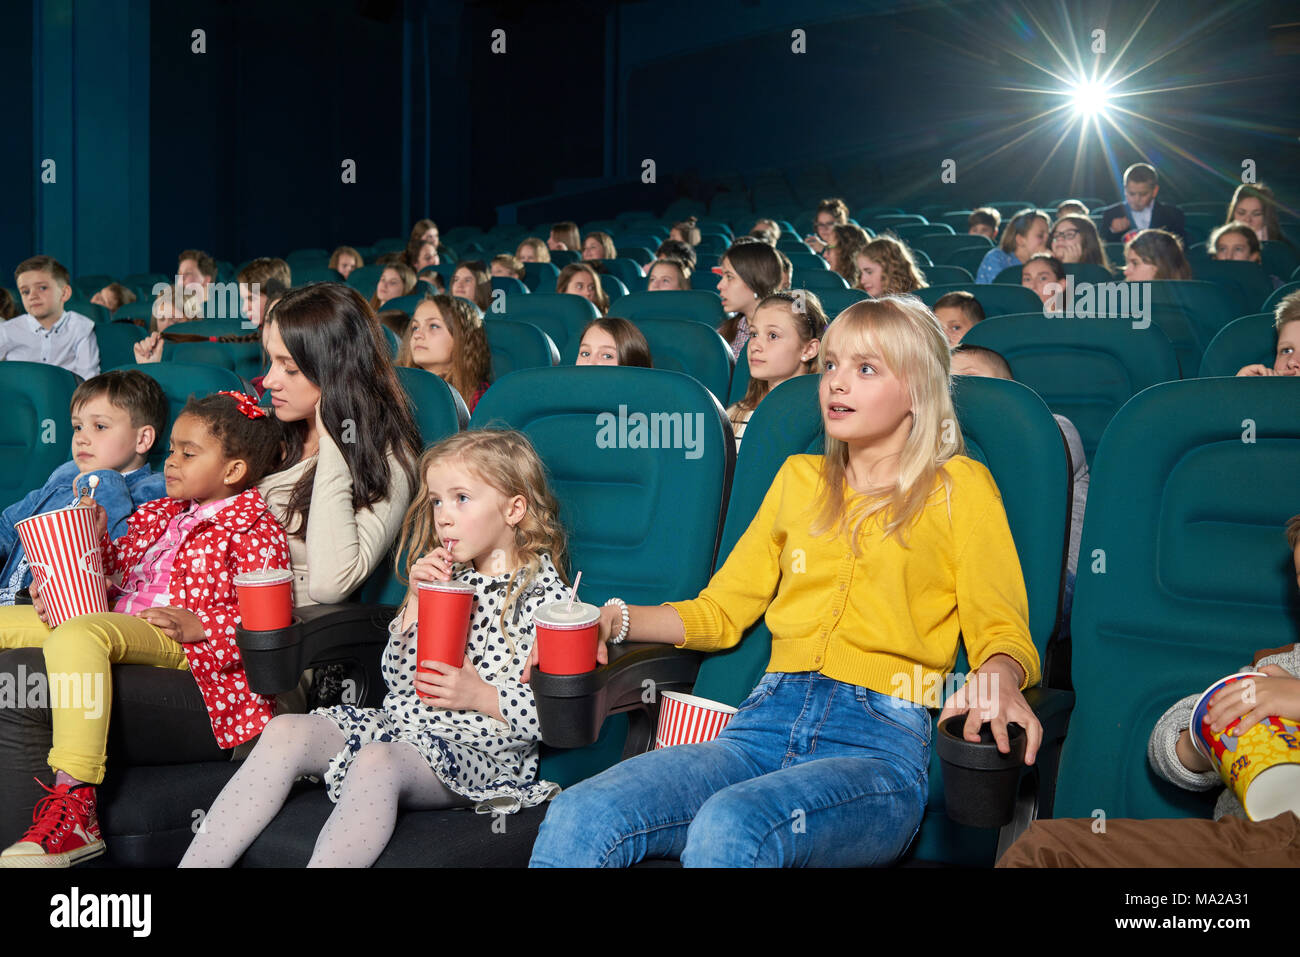 Interested girls watching new movie in the cinema. Children drinking fizzy drinks and eating popcorn. Looking emotional, exited, happy and satisfied. Other people on background. - Stock Image